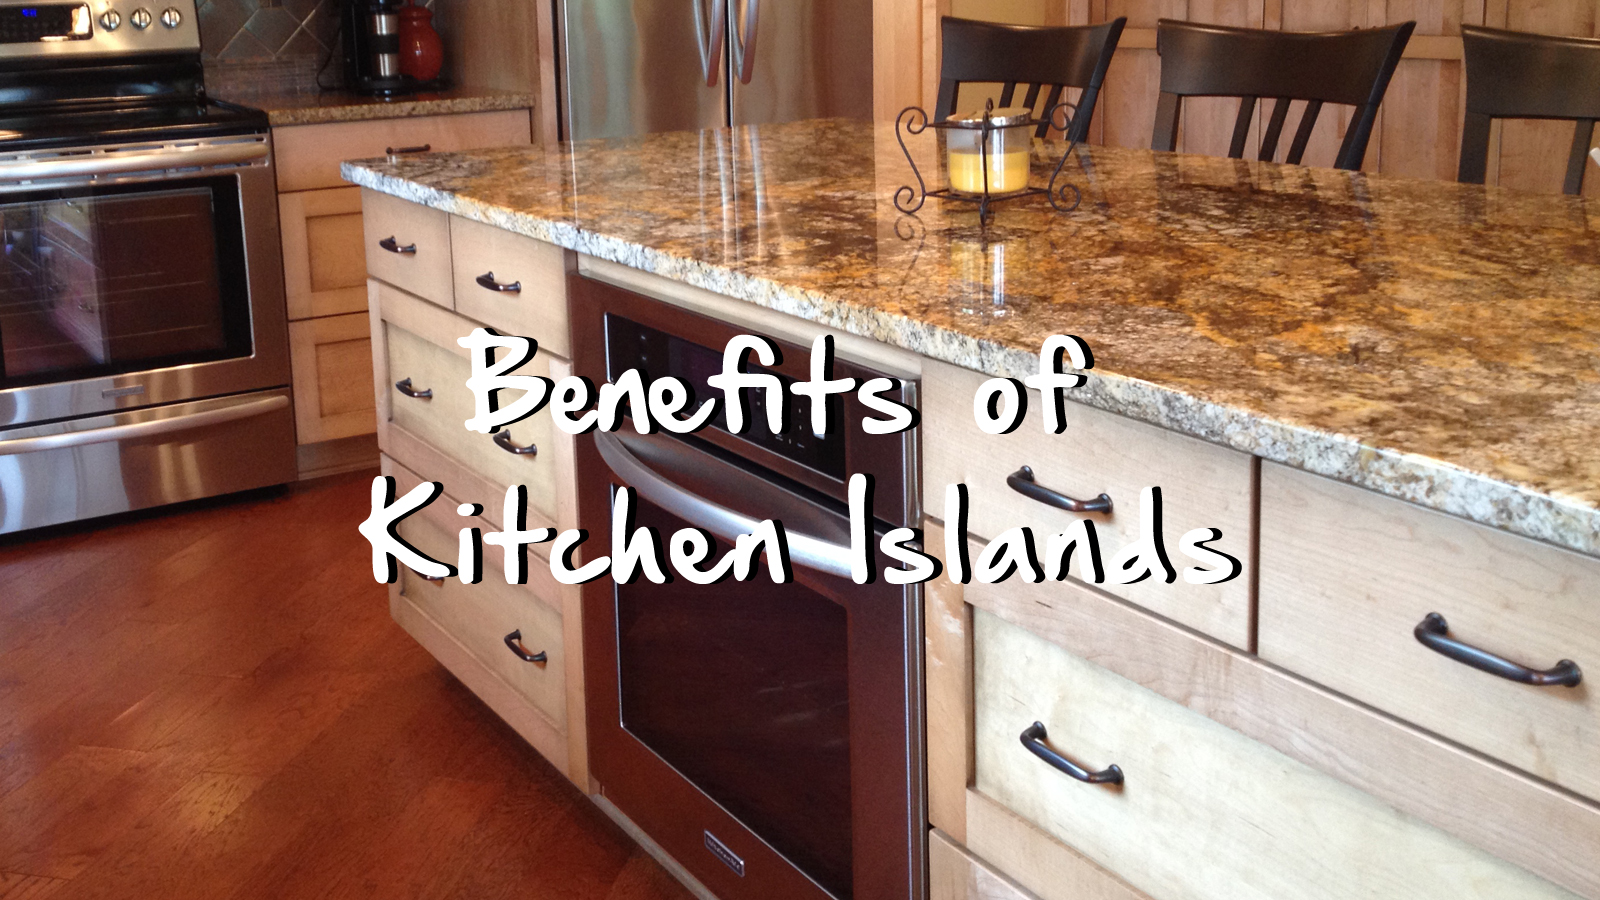 6 Benefits Of Kitchen Islands